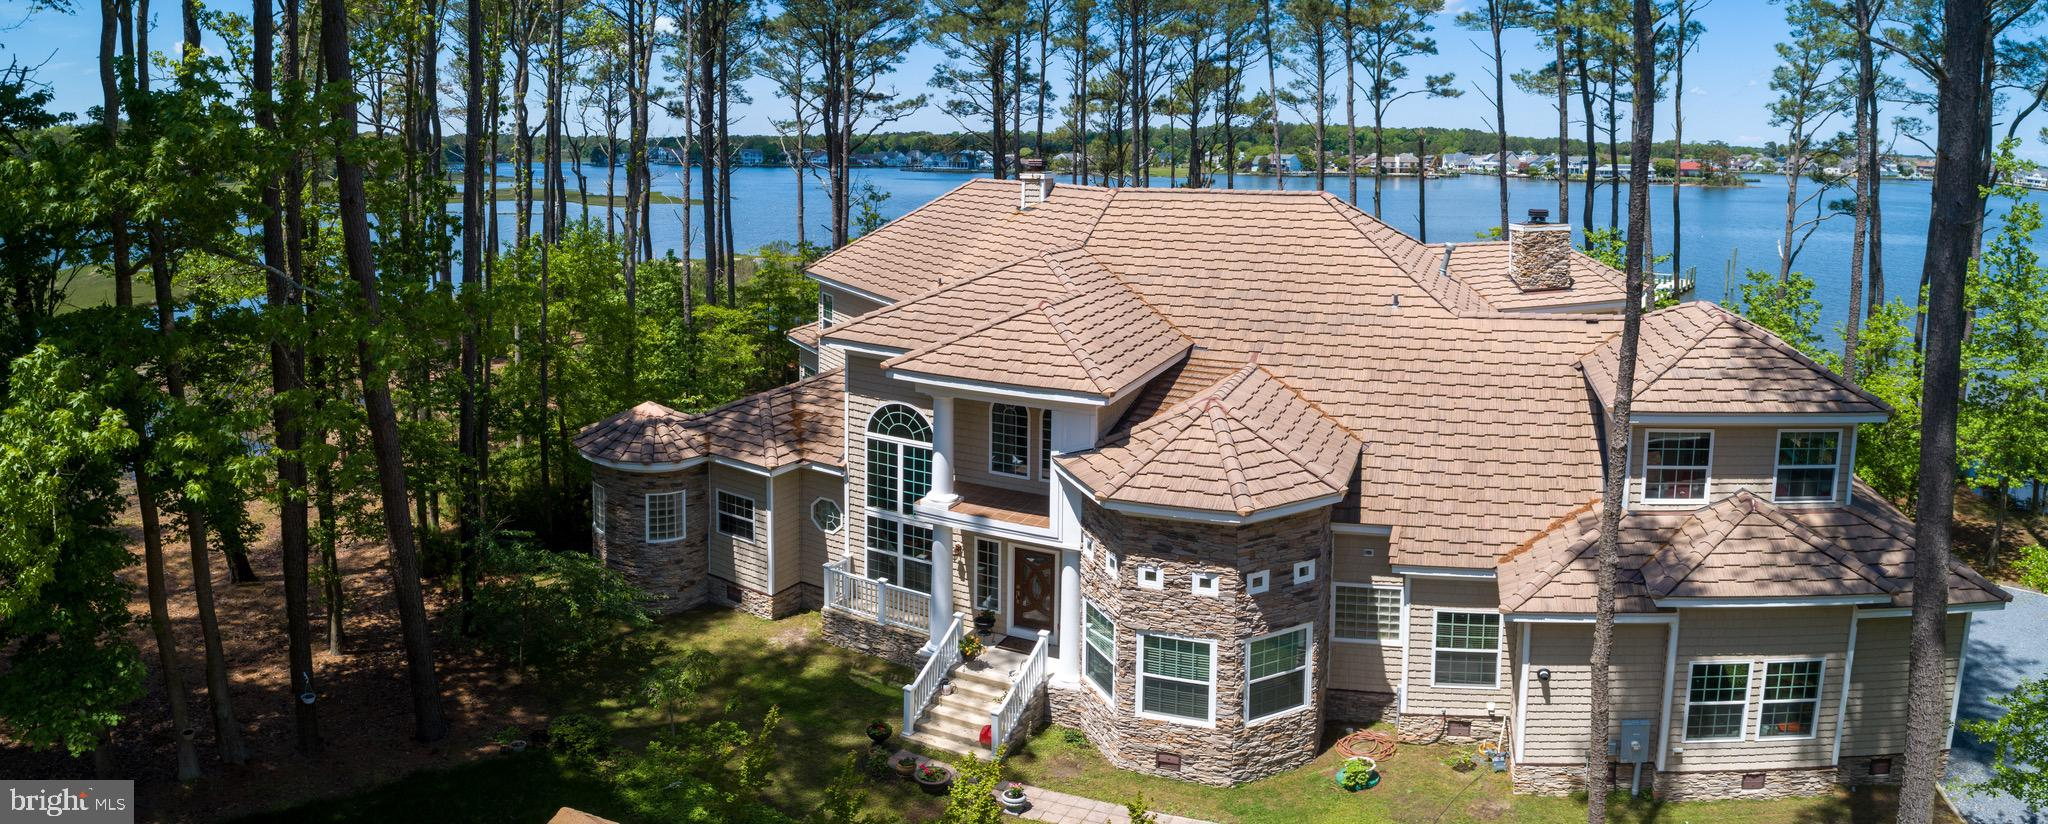 521 TIDEWATER COVE, OCEAN PINES, MD 21811